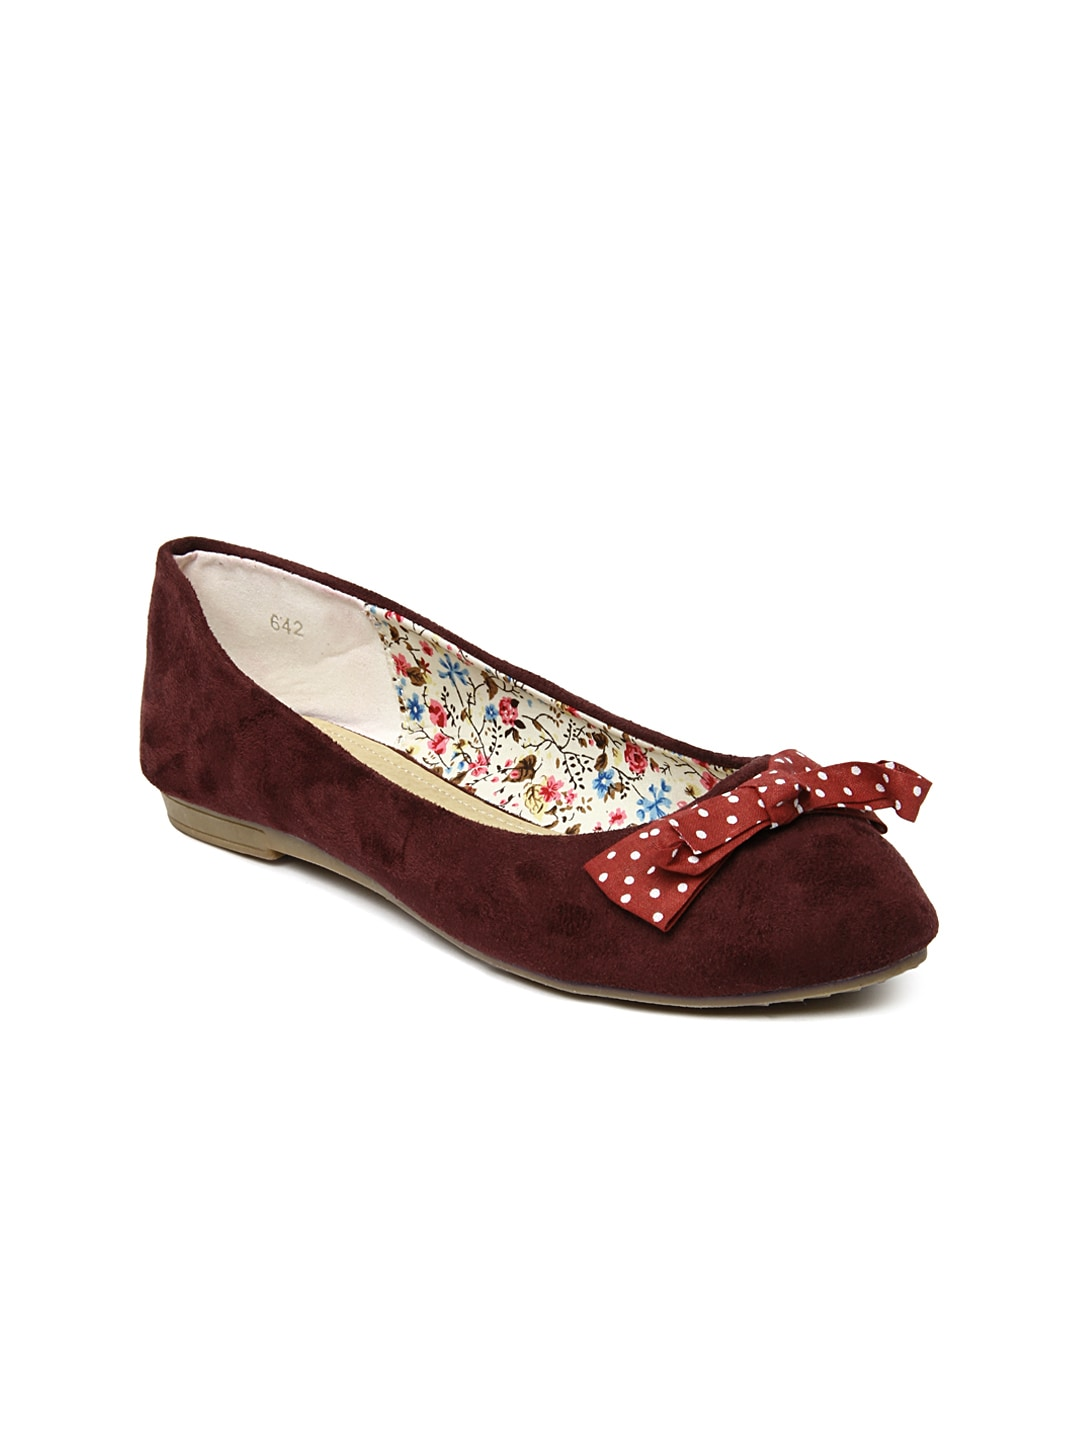 Maroon Shoes For Women